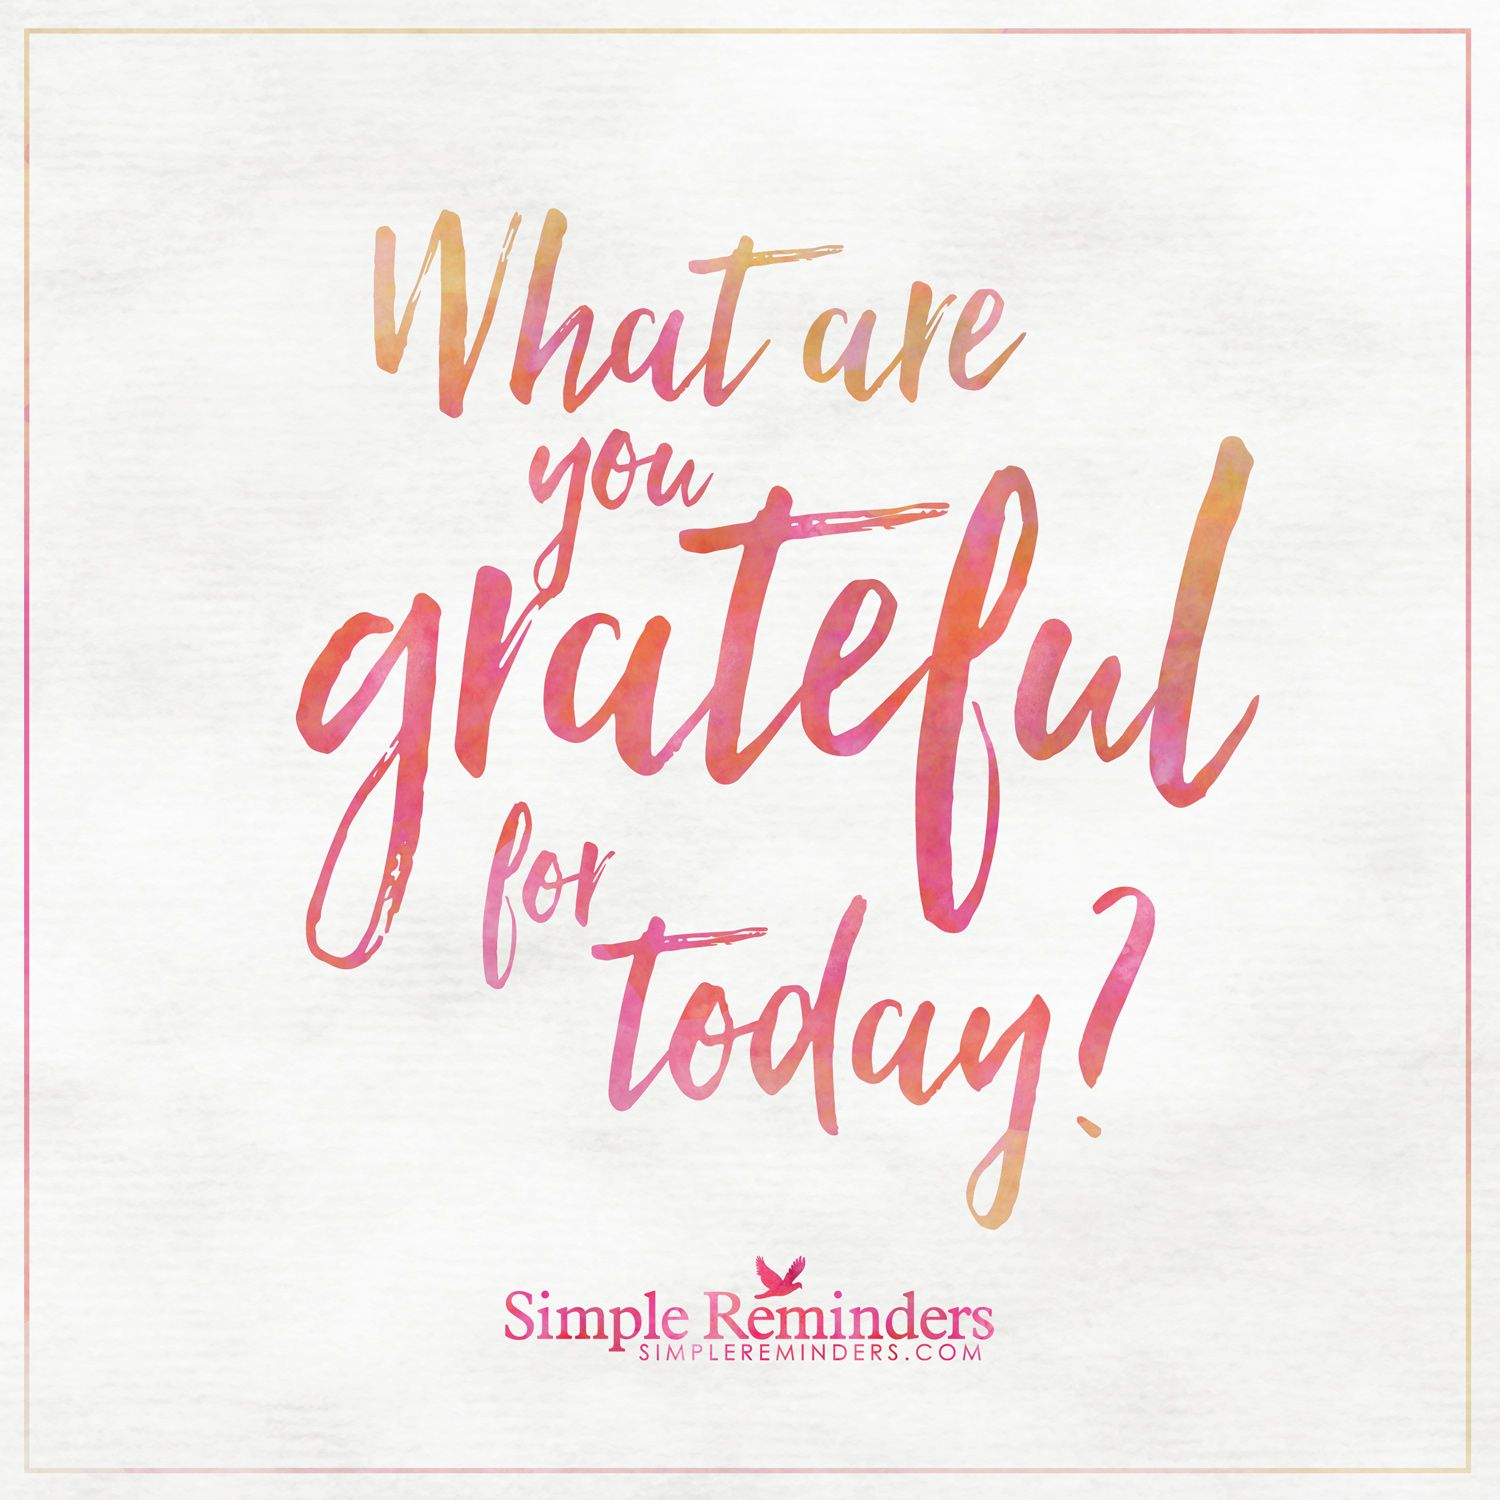 Good morning, what are you grateful for today or this year